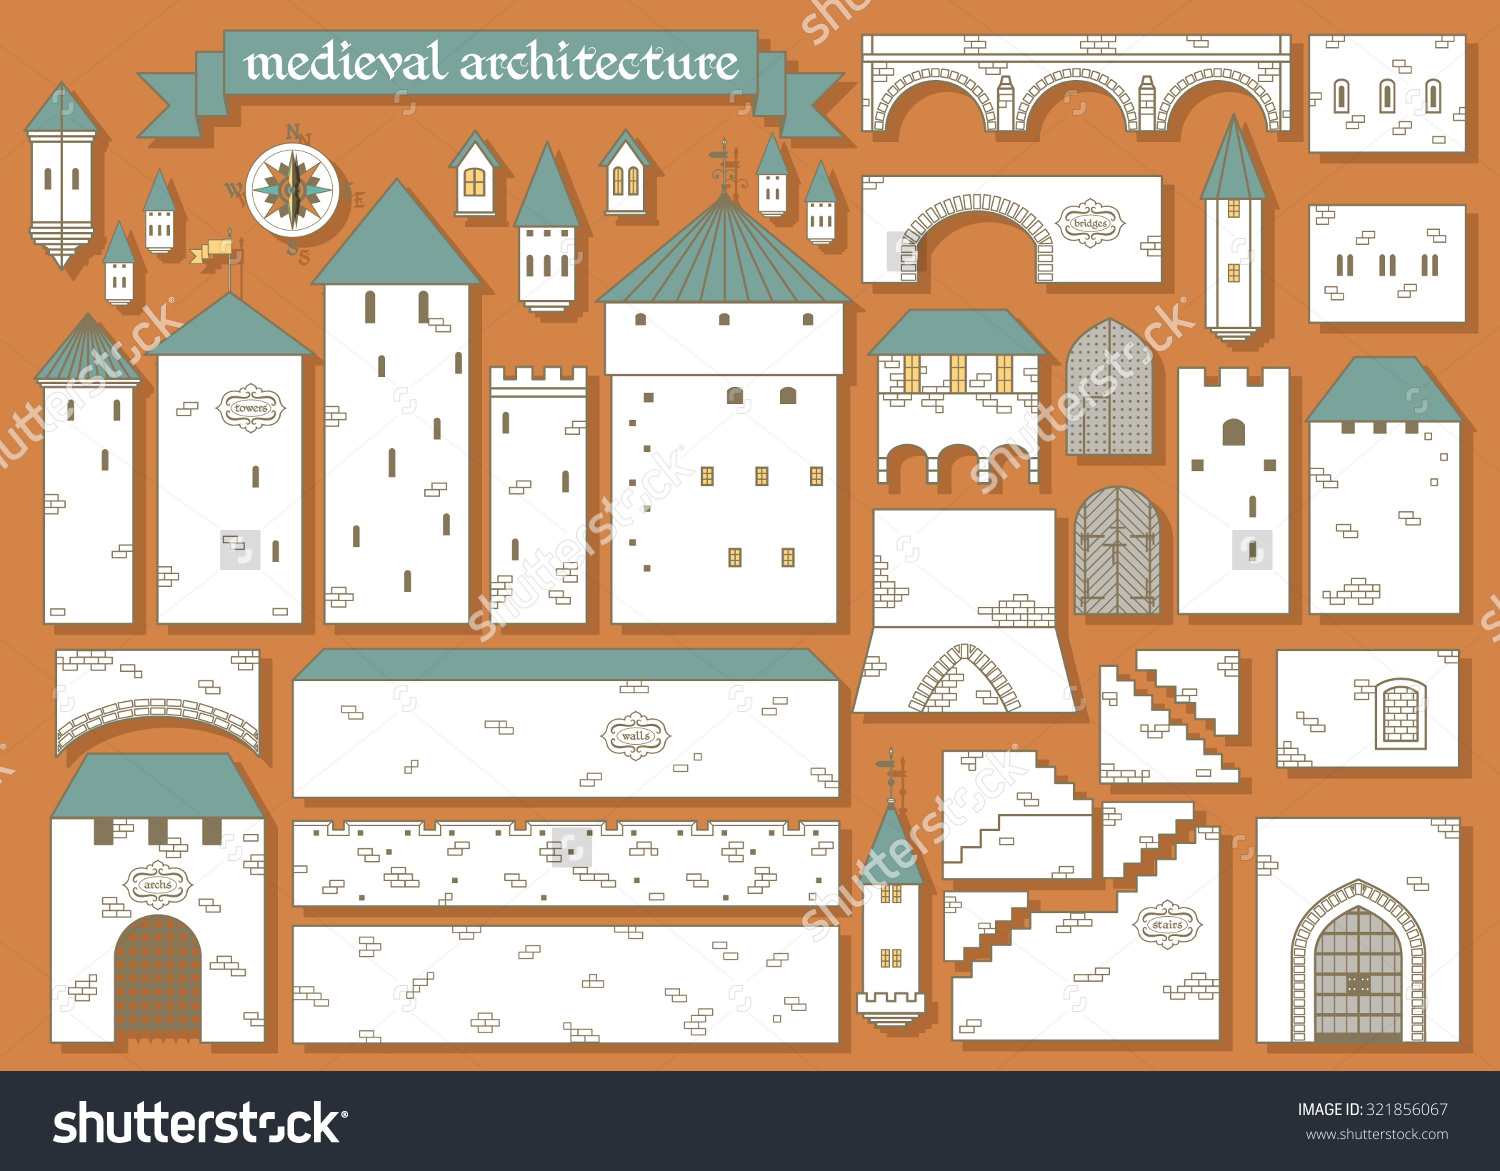 Vector Illustration: Graphic Elements Parts Of The Middle Ages.